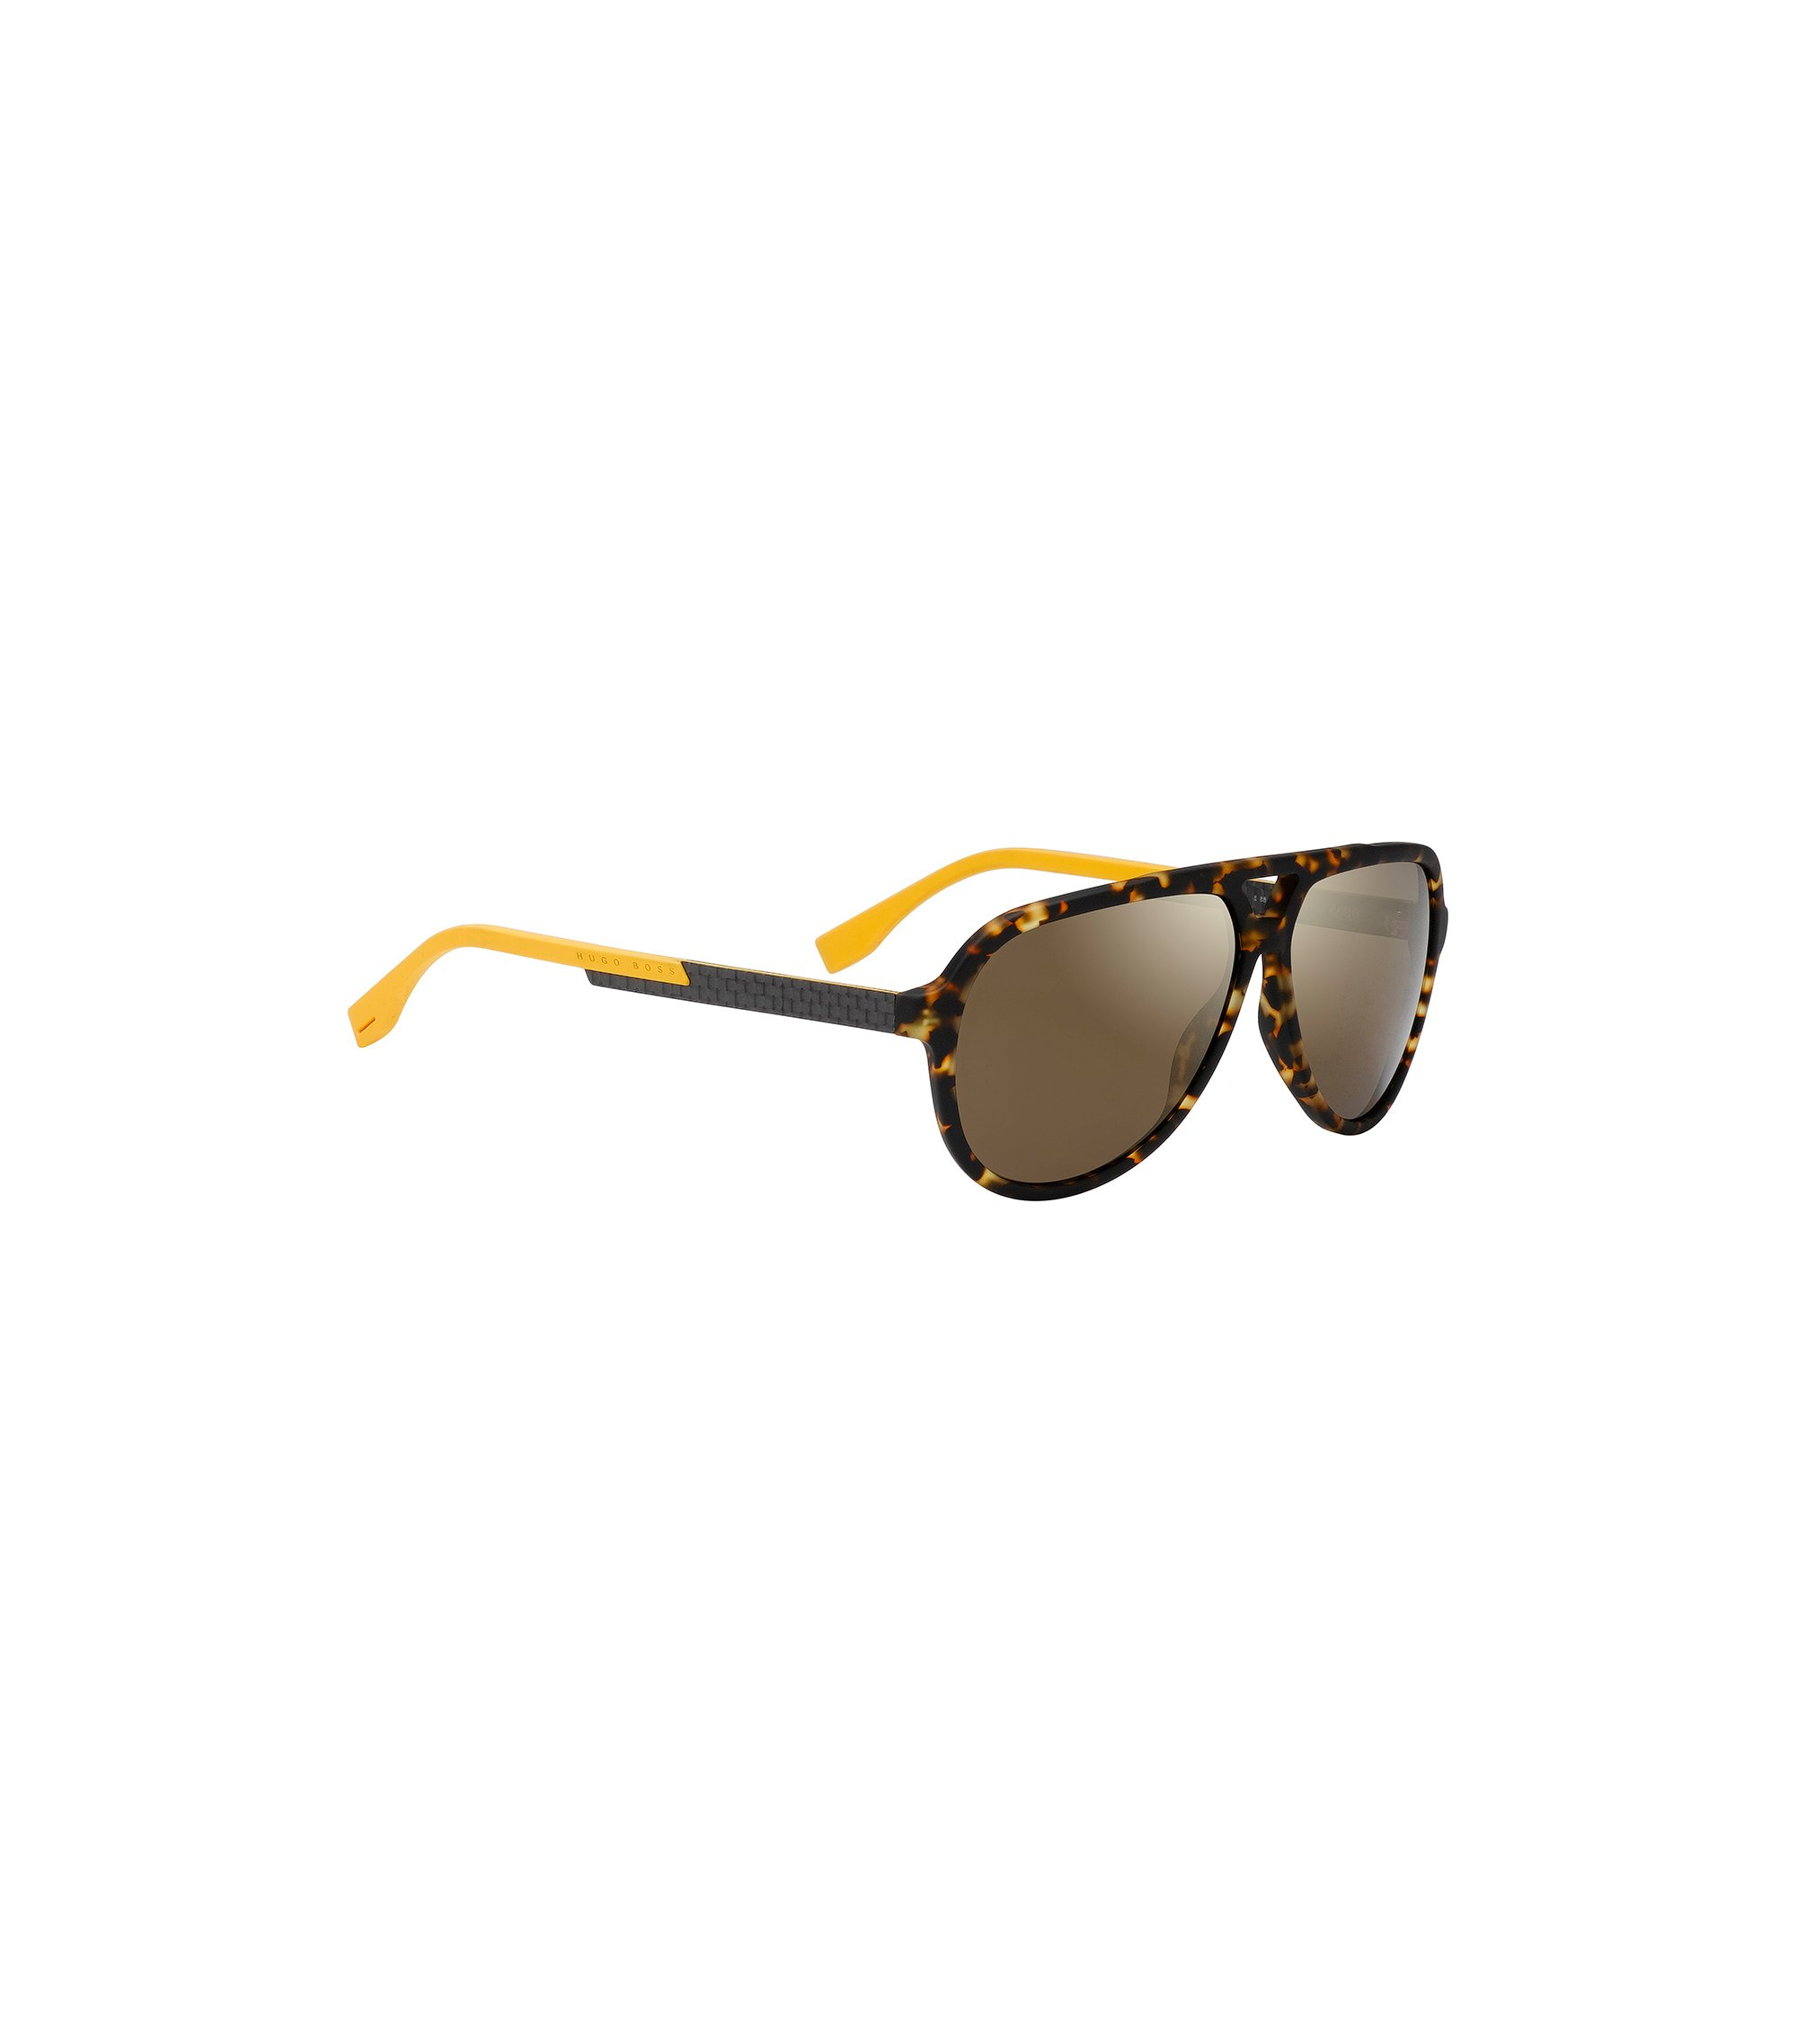 Sunglasses: 'BOSS 0731/S', Assorted-Pre-Pack